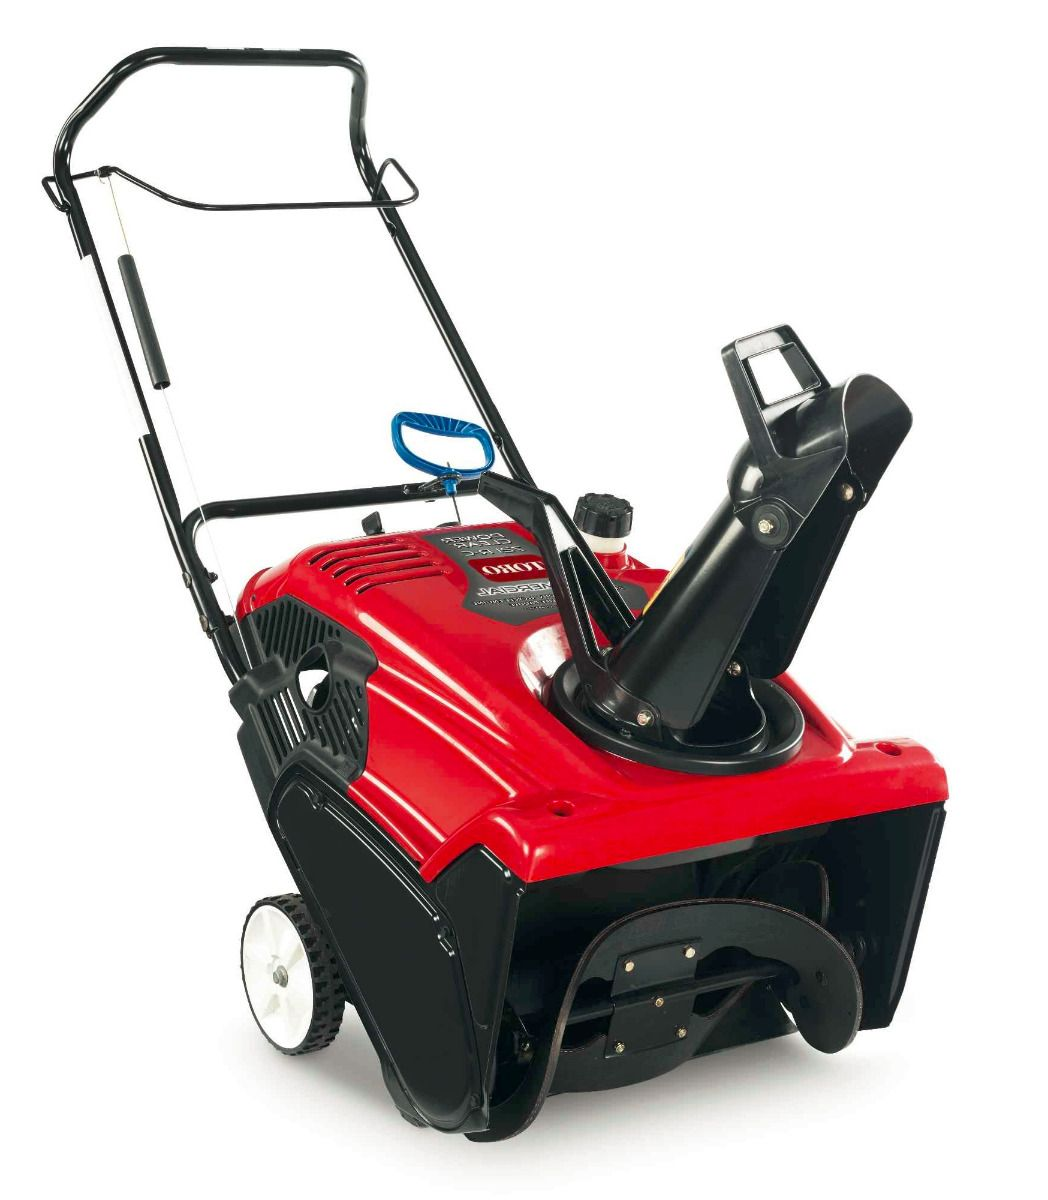 toro power clear 721 qze review